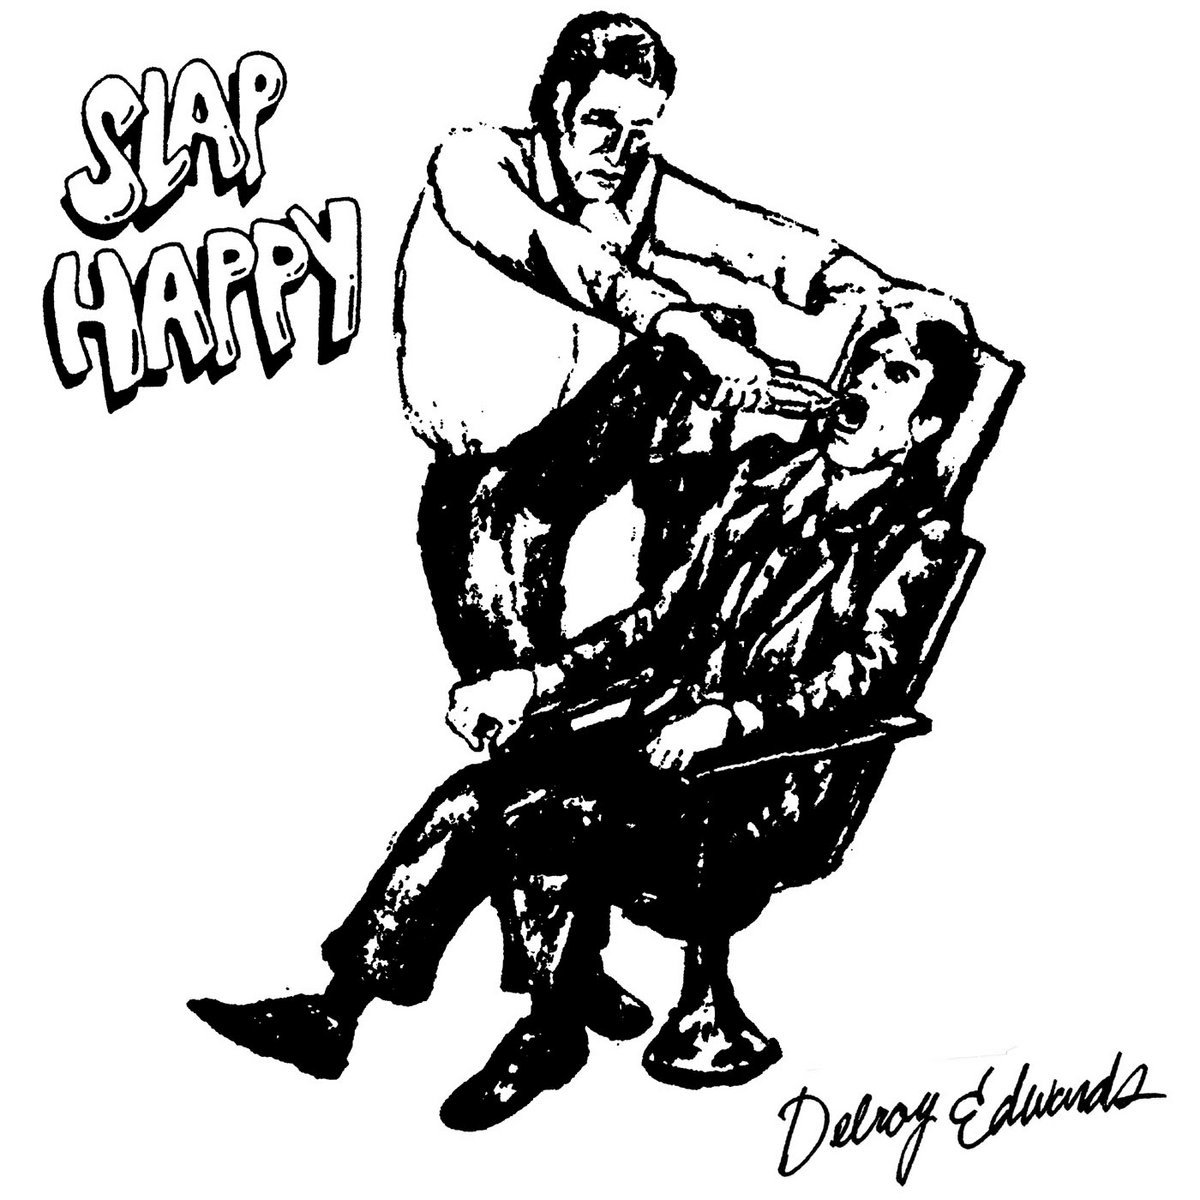 Slap Happy Delroy Edwards L I E S Records